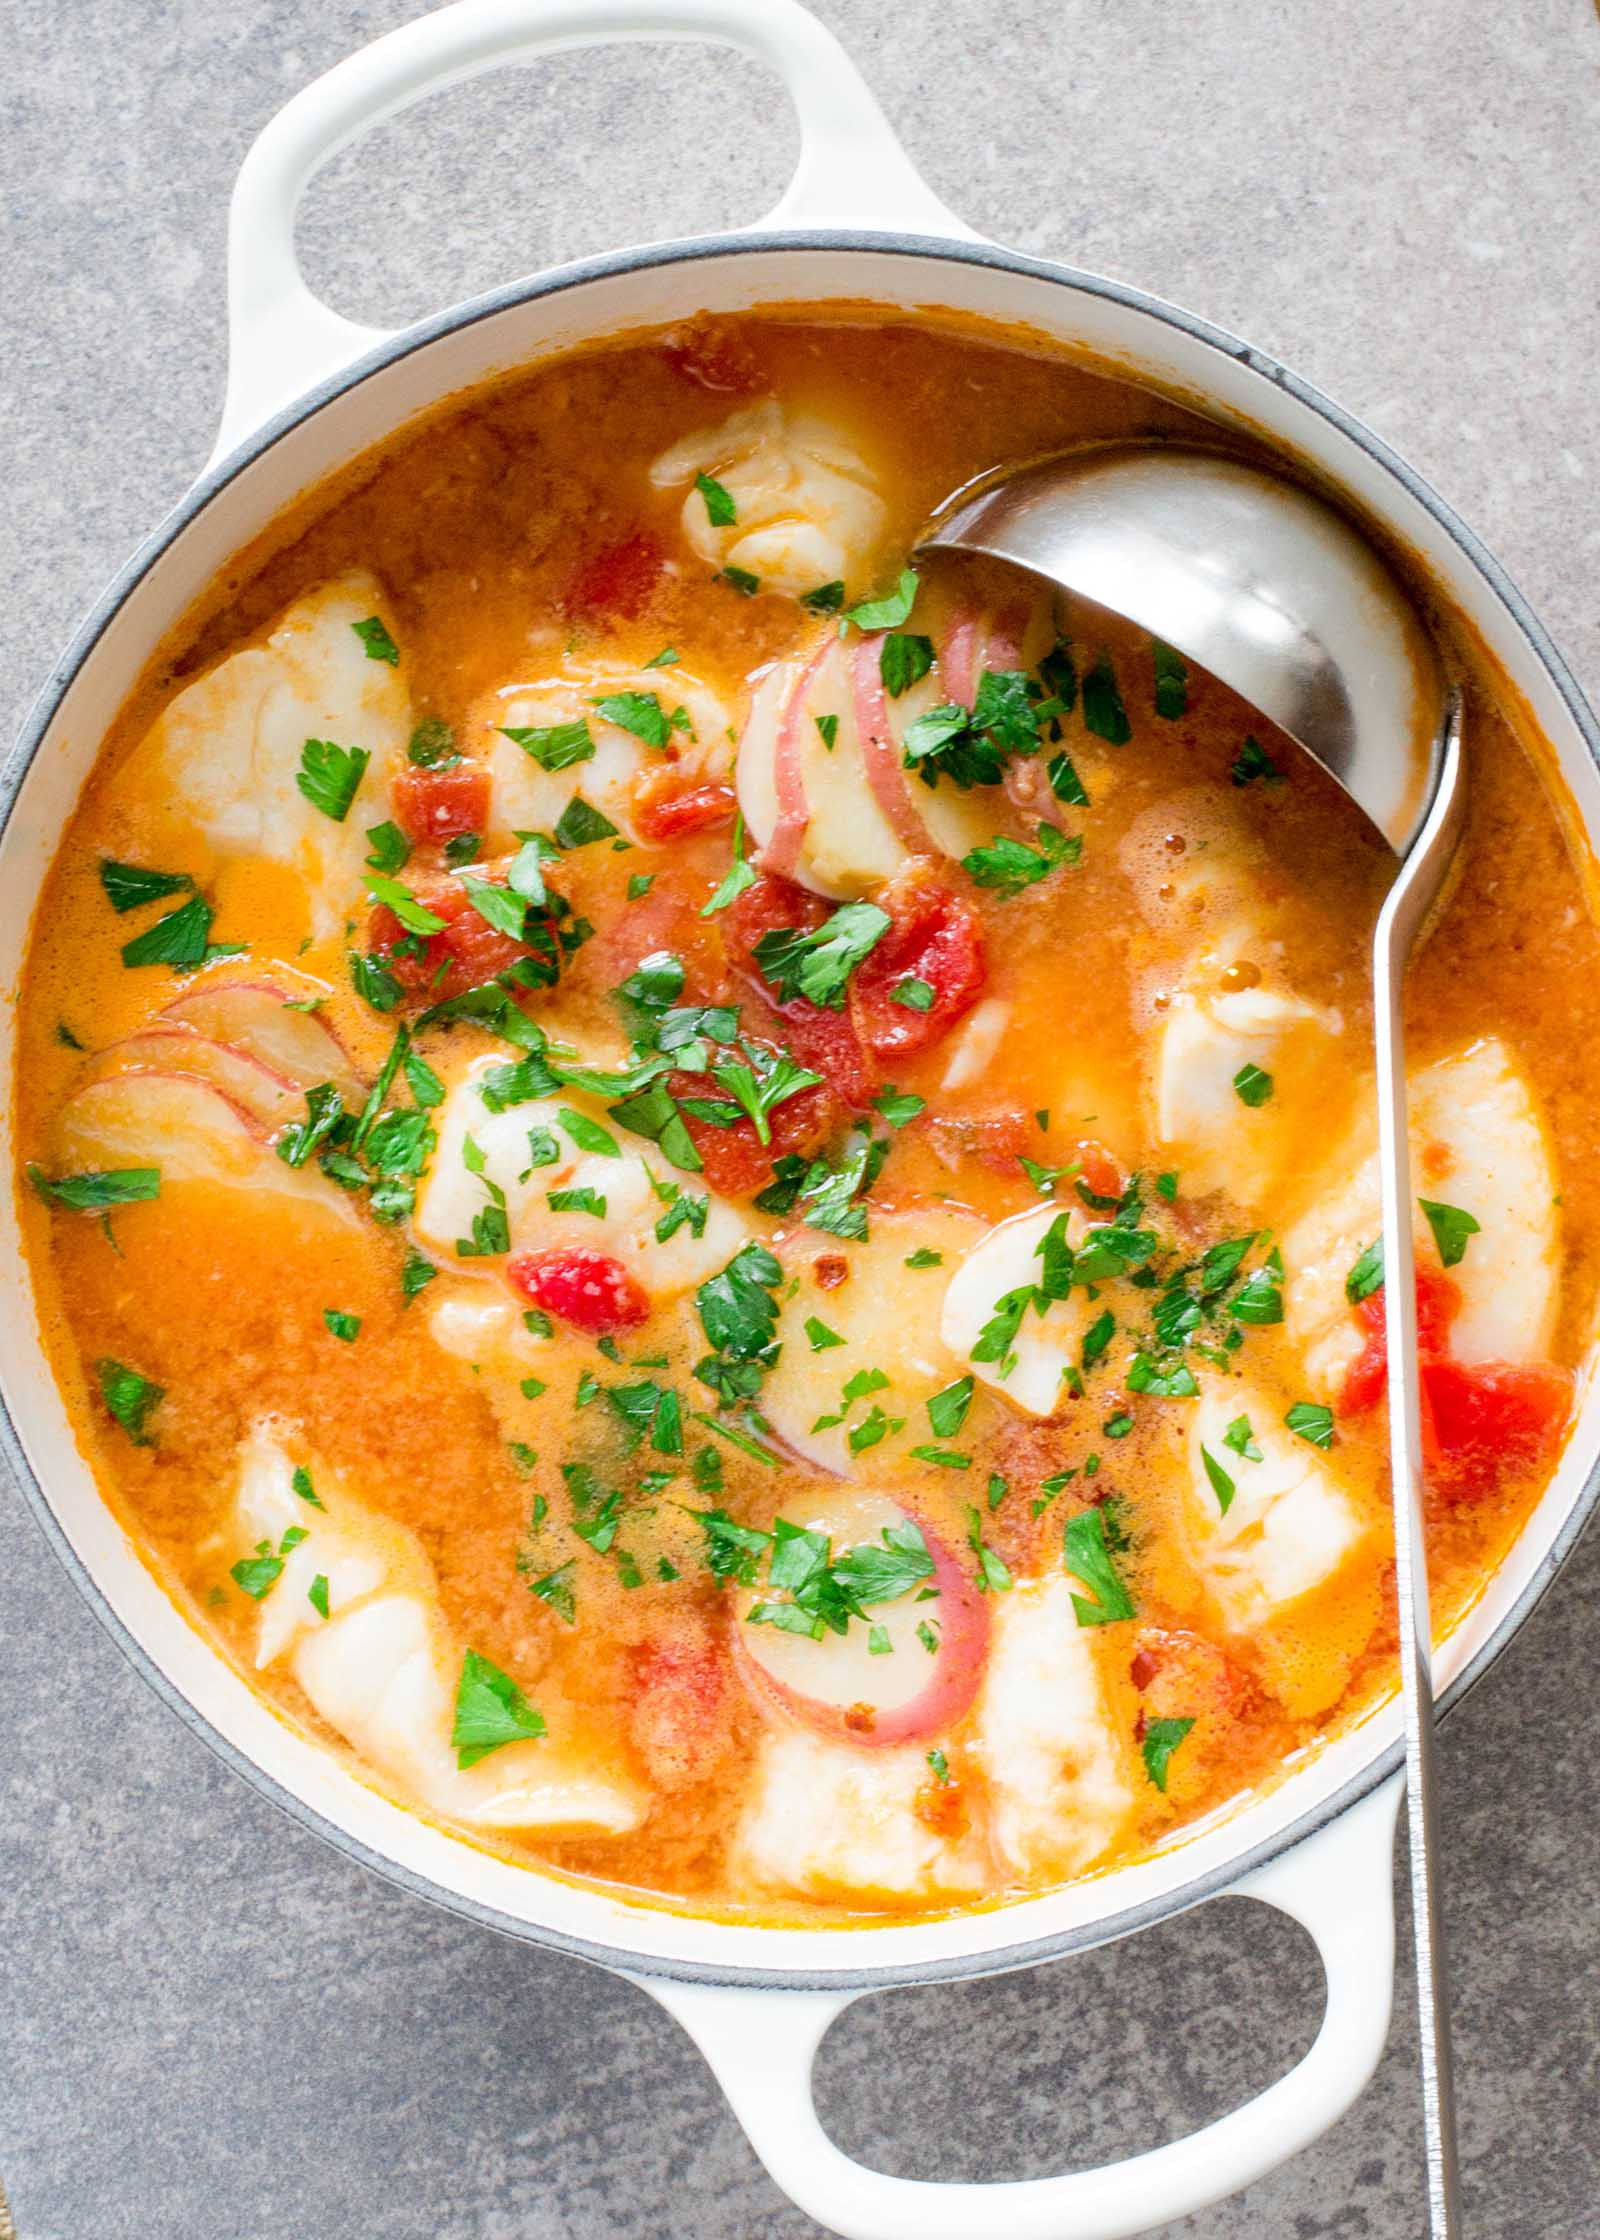 Recipes For Fish Stew  Fish Stew with Ginger and Tomatoes Recipe